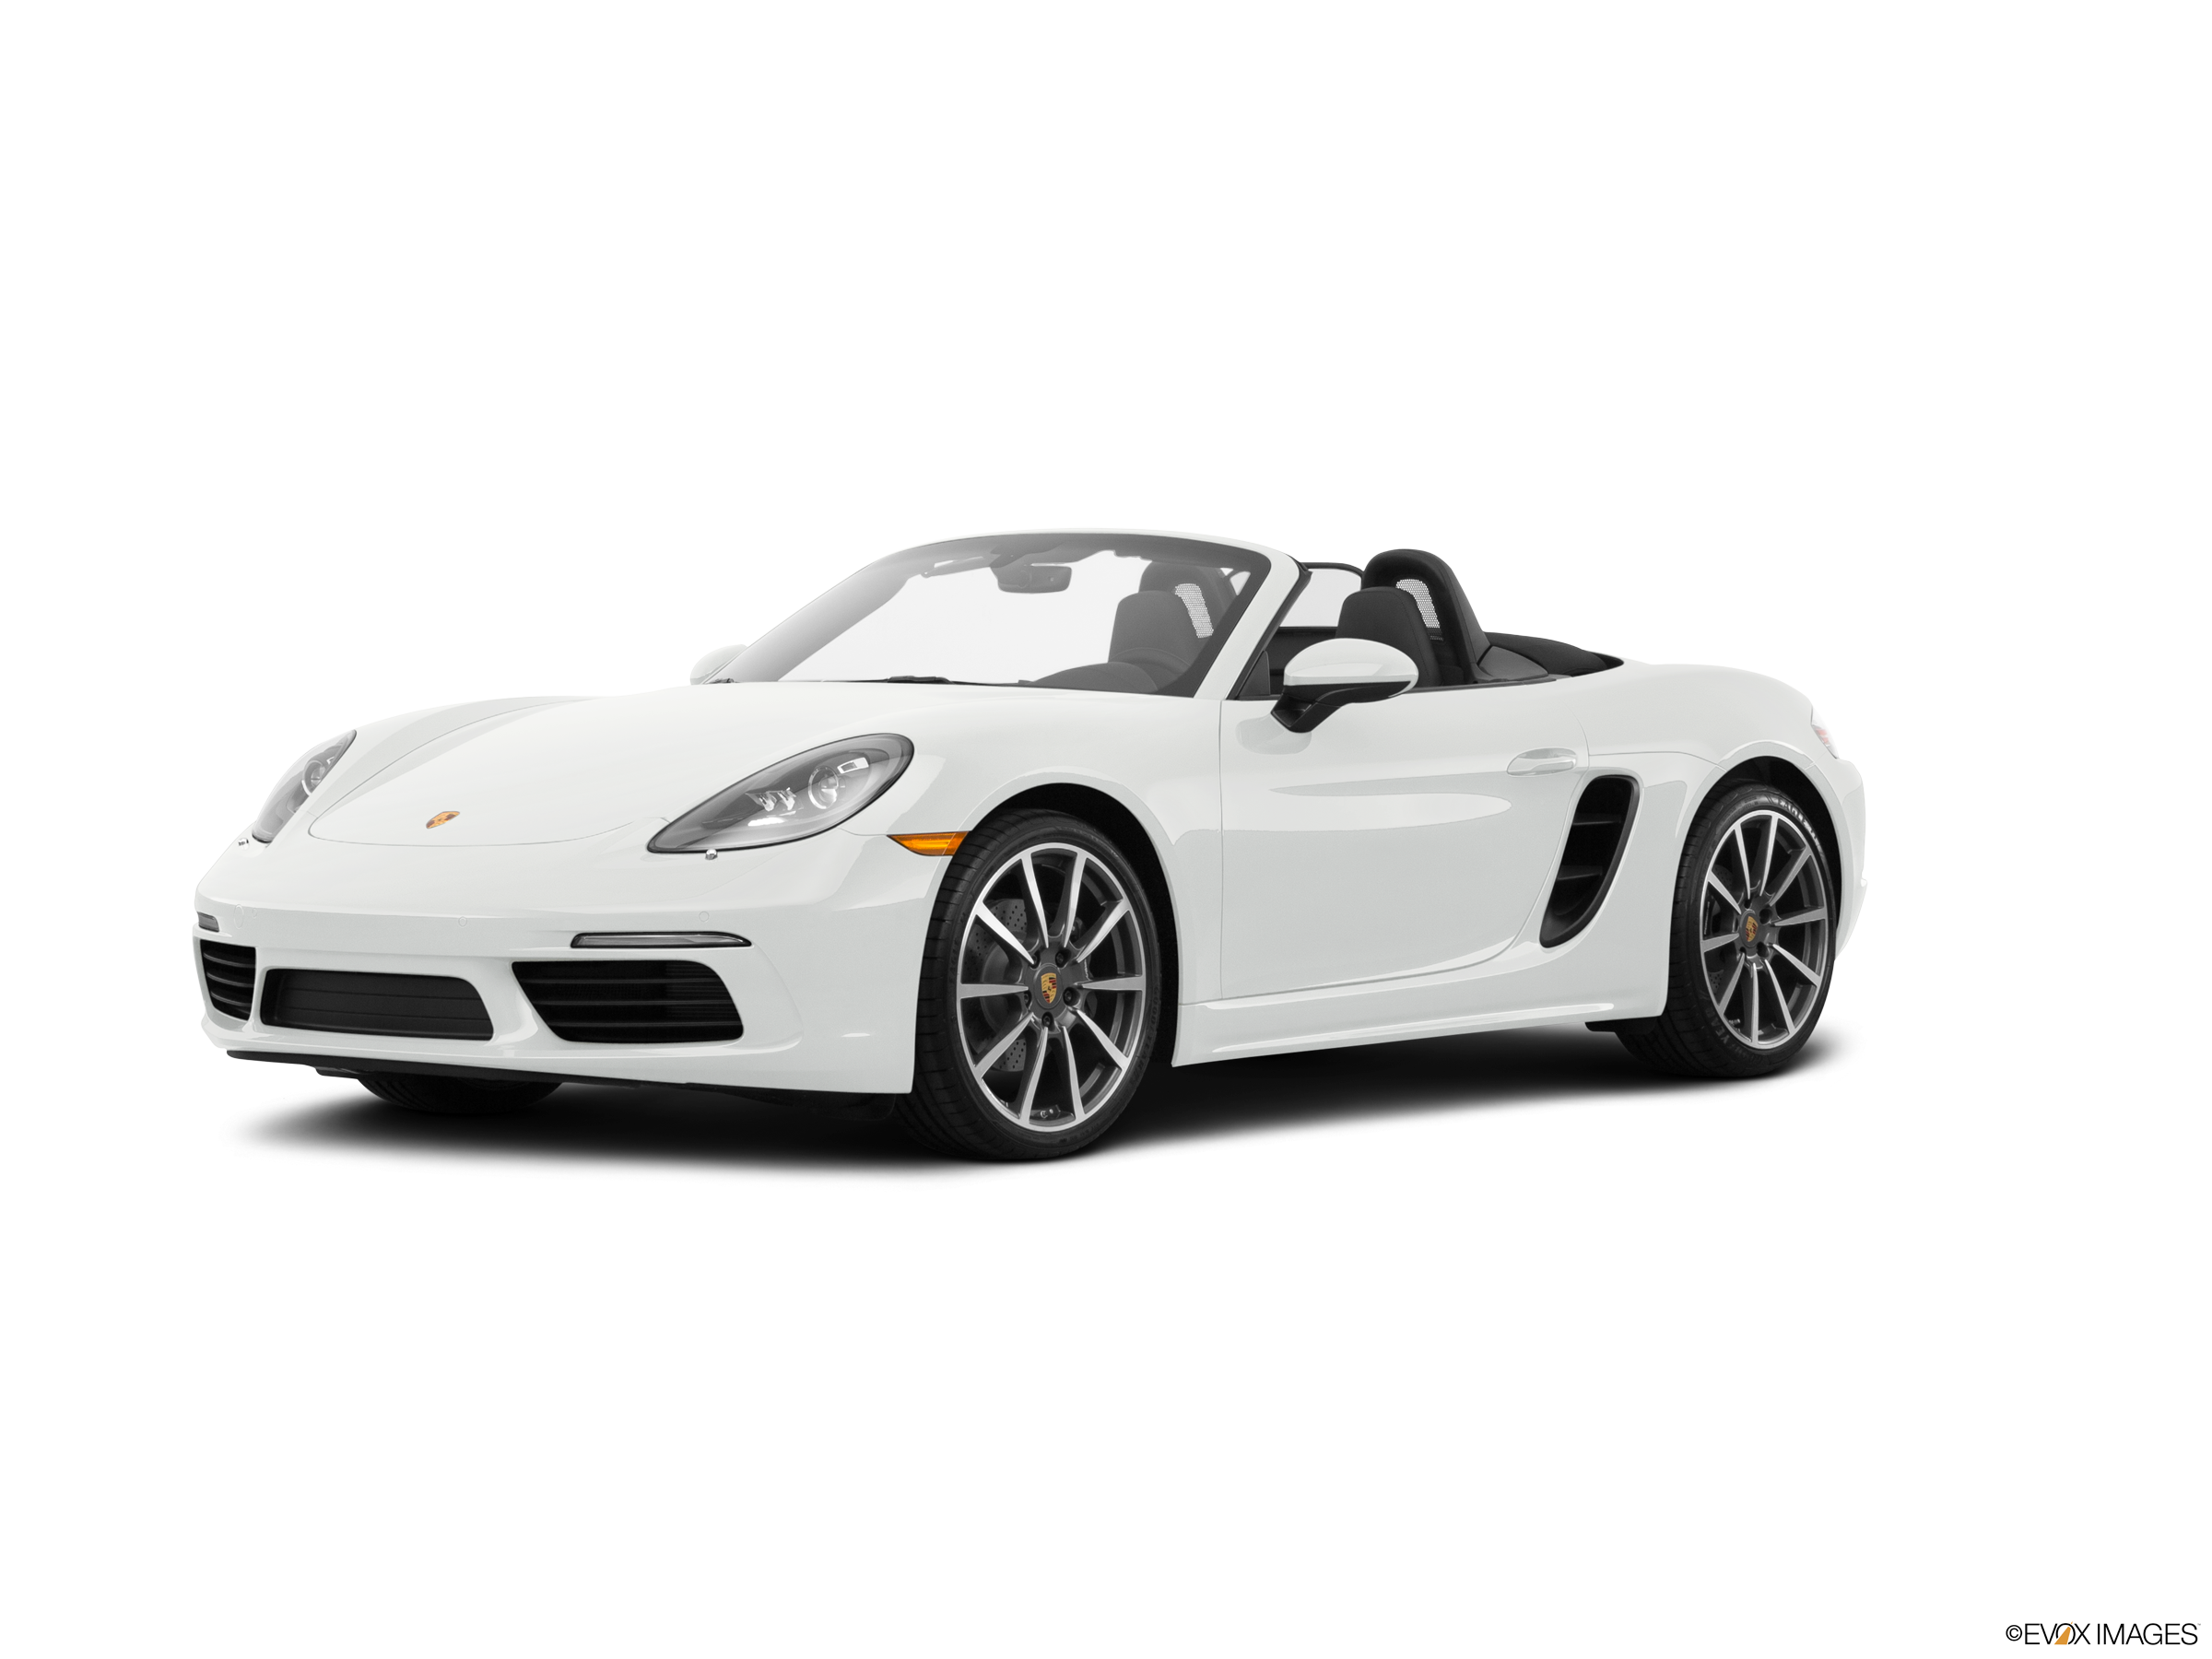 Top Expert Rated Convertibles of 2017 - 2017 Porsche 718 Boxster